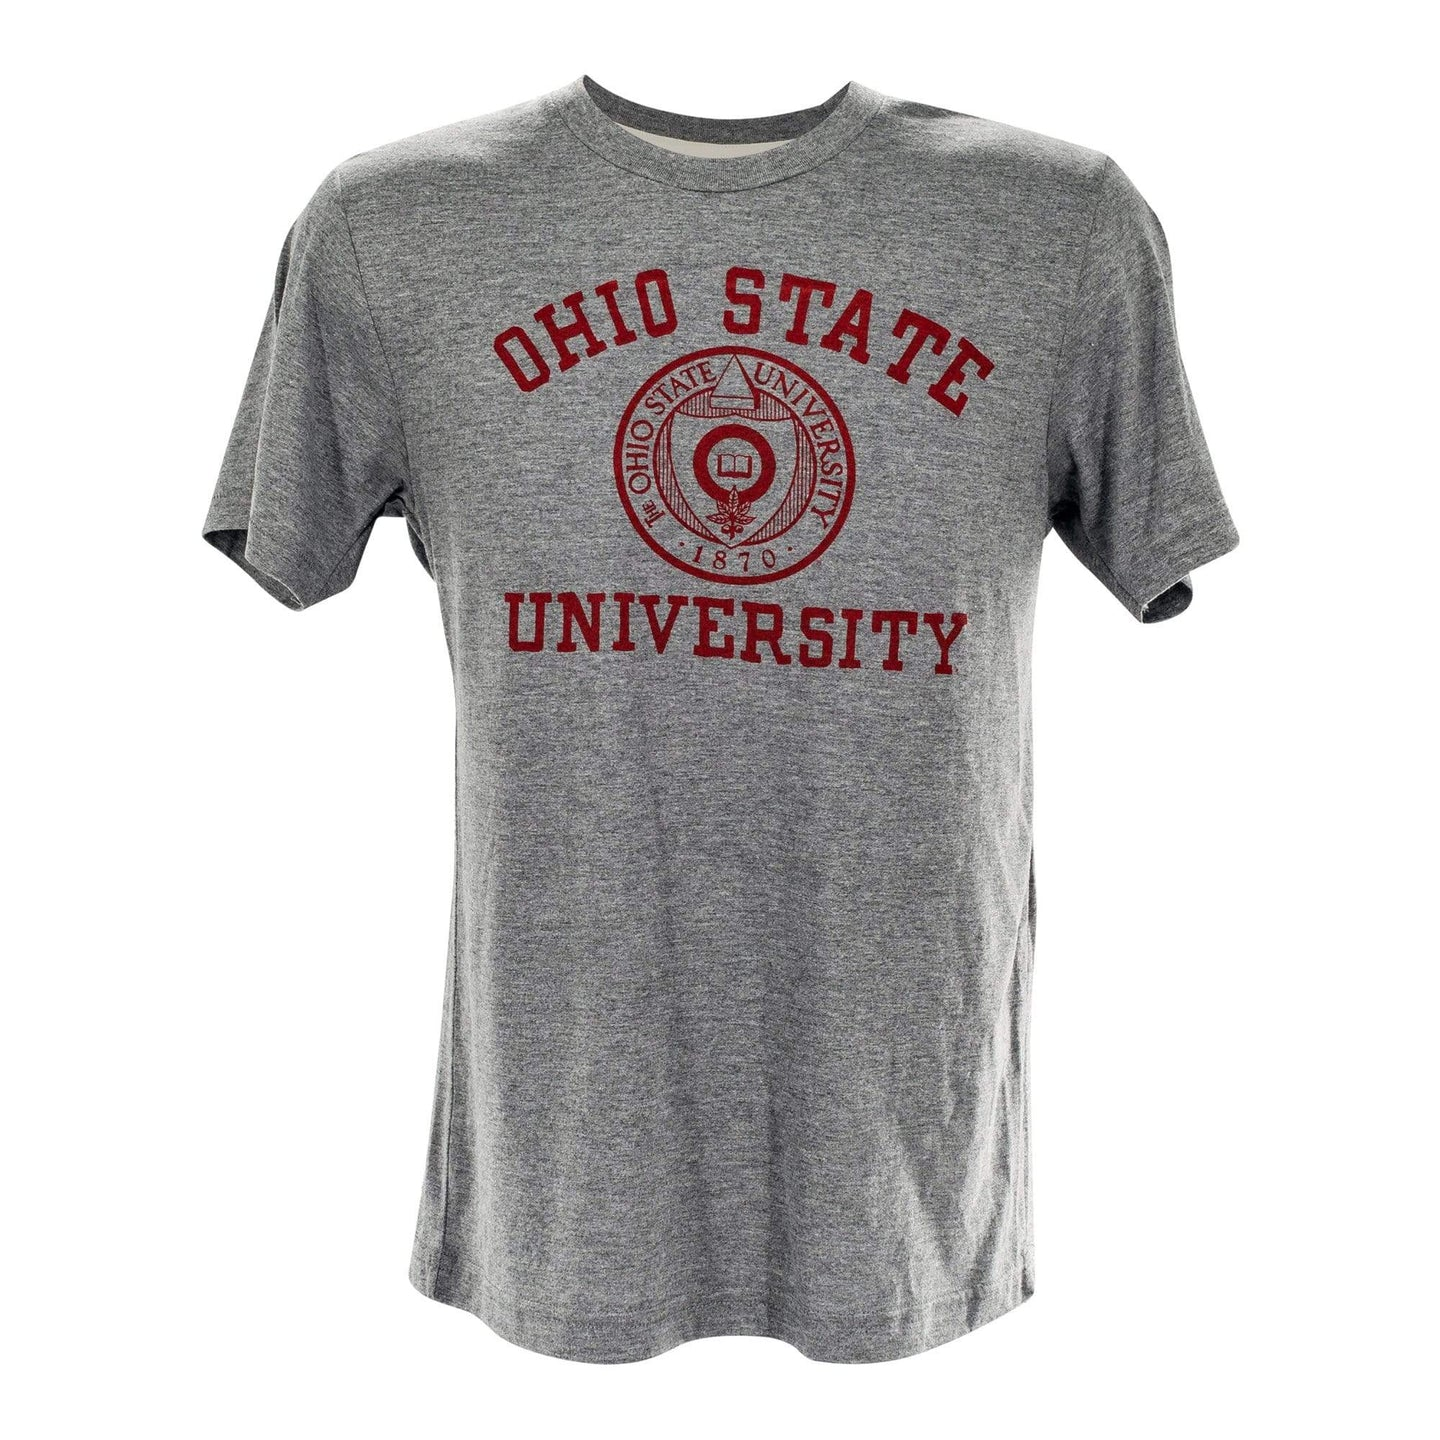 Ohio State University Seal Vintage Gray T-Shirt